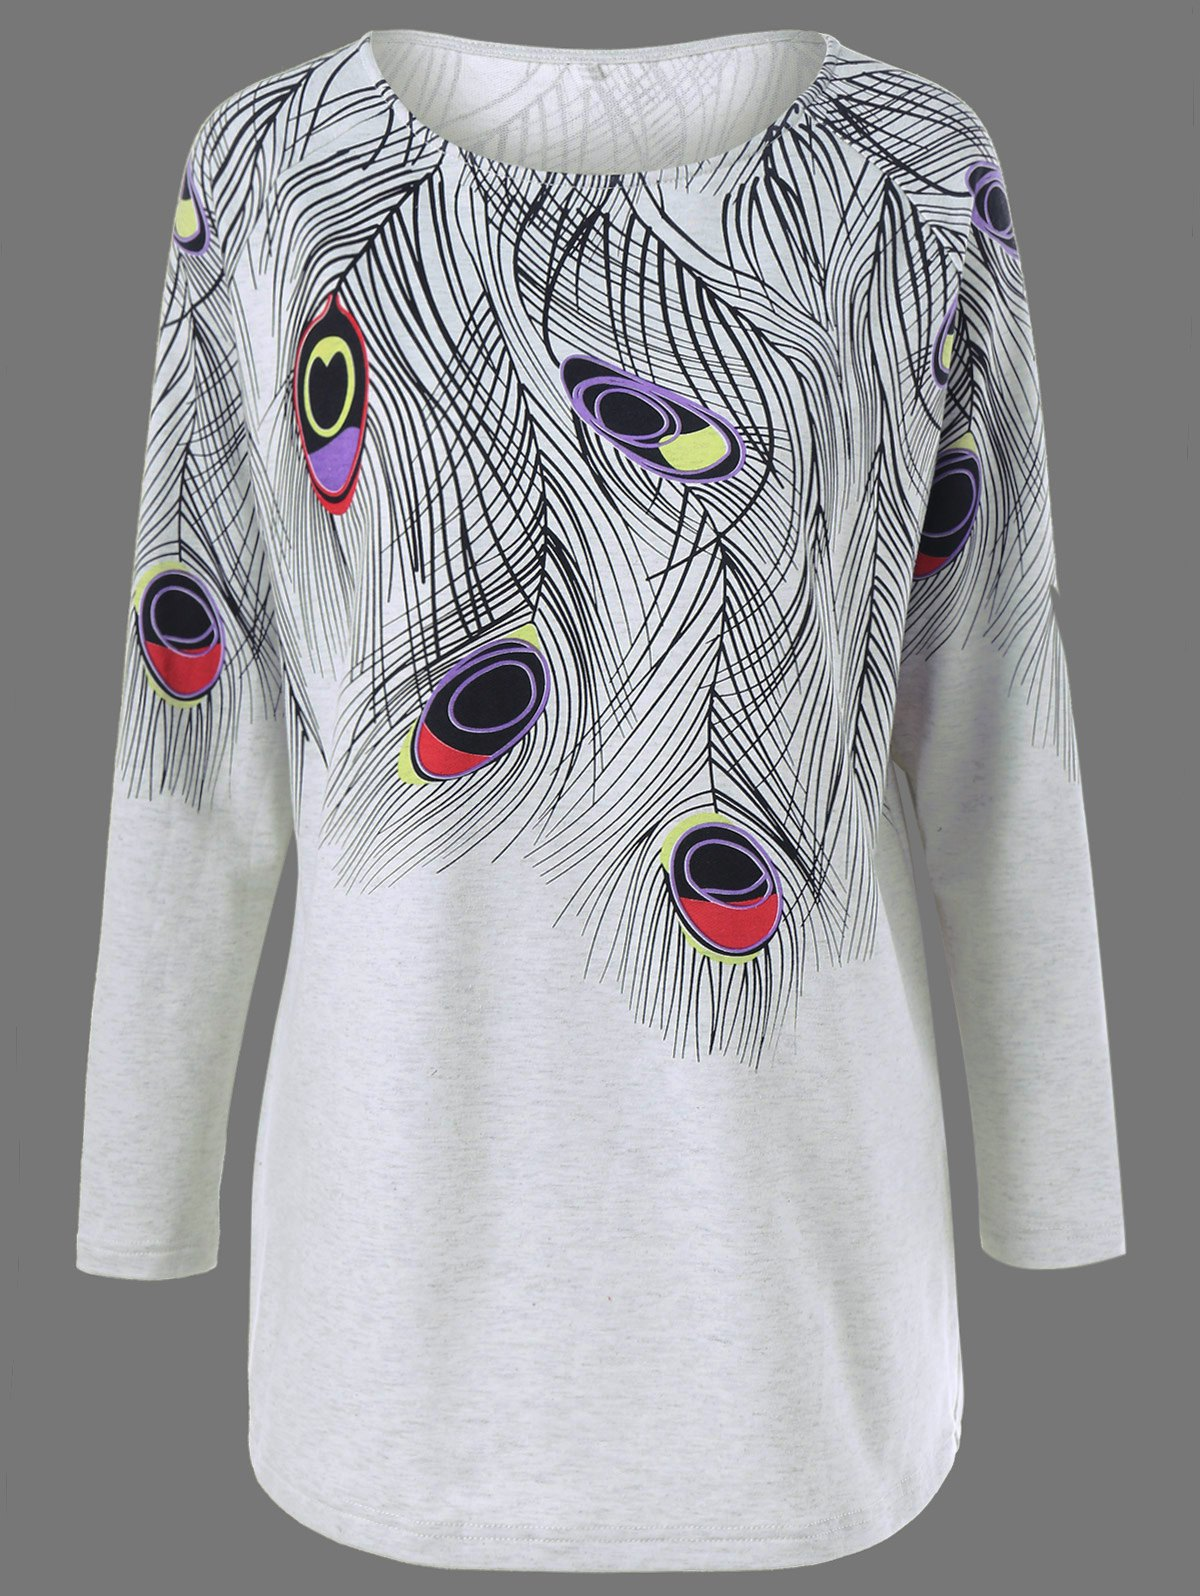 Plus Size Feather Print Longline T-ShirtWOMEN<br><br>Size: XL; Color: LIGHT GRAY; Material: Cotton Blends,Polyester,Spandex; Shirt Length: Long; Sleeve Length: Full; Collar: Round Neck; Style: Fashion; Season: Fall,Spring; Pattern Type: Print; Weight: 0.320kg; Package Contents: 1 x T-Shirt;